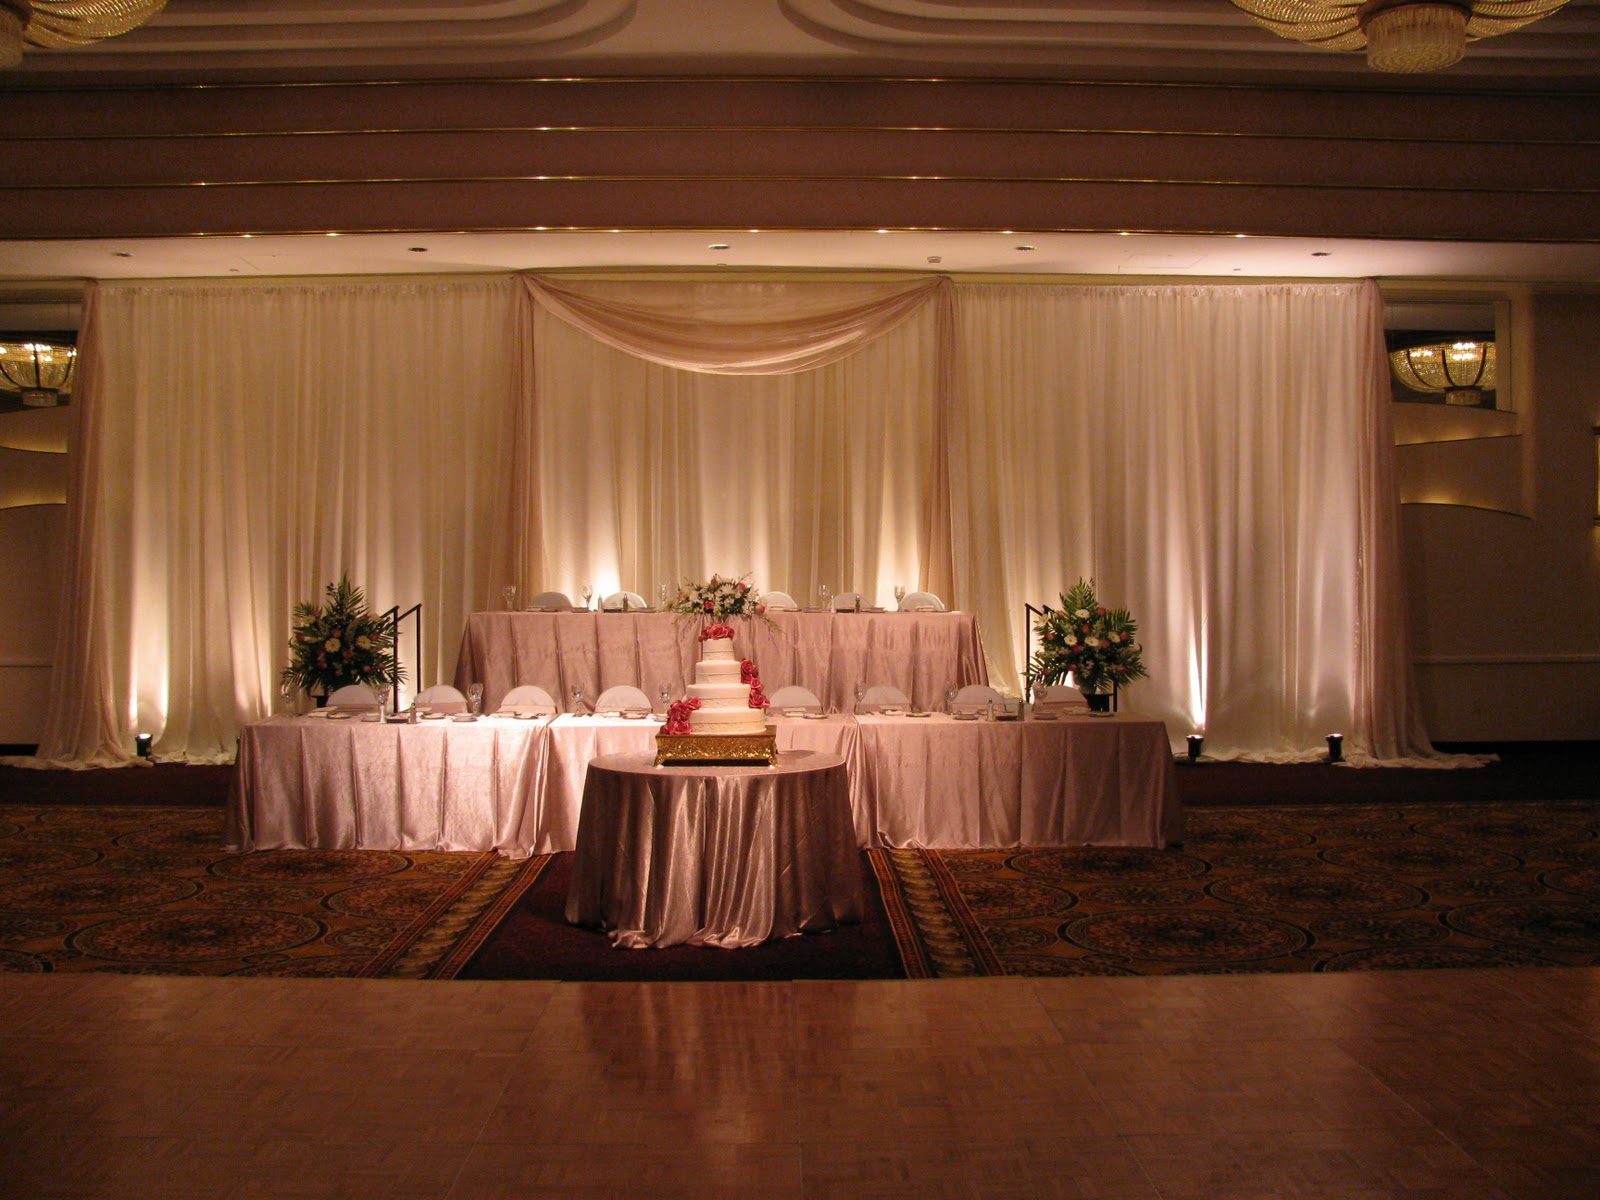 Fabric Draping – Fabric can create a focal point, intimate spaces title=